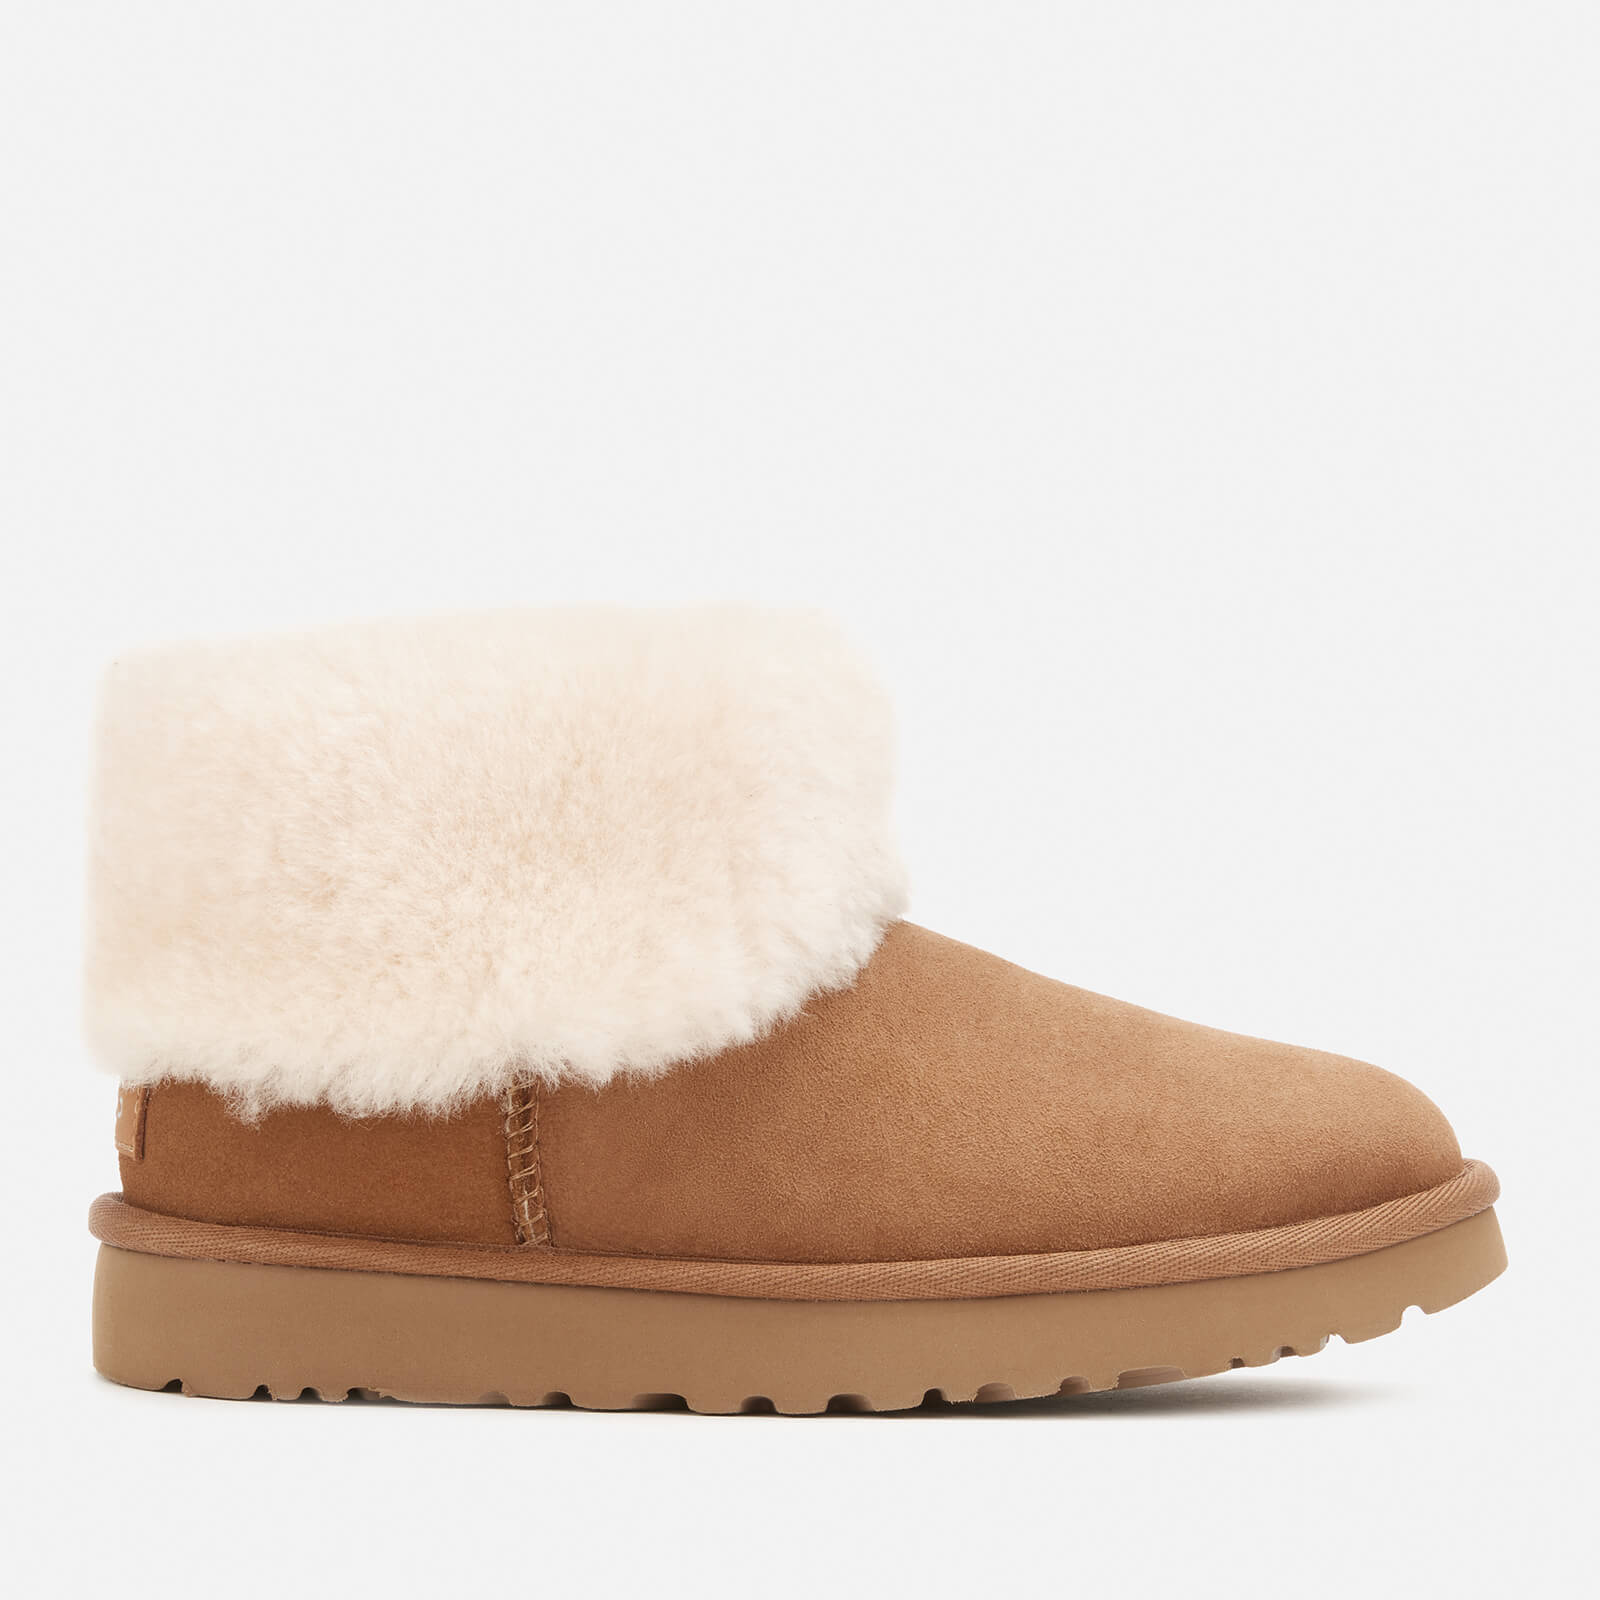 UGG Women's Classic Mini Exposed Sheepskin Boots - Chestnut - UK 7